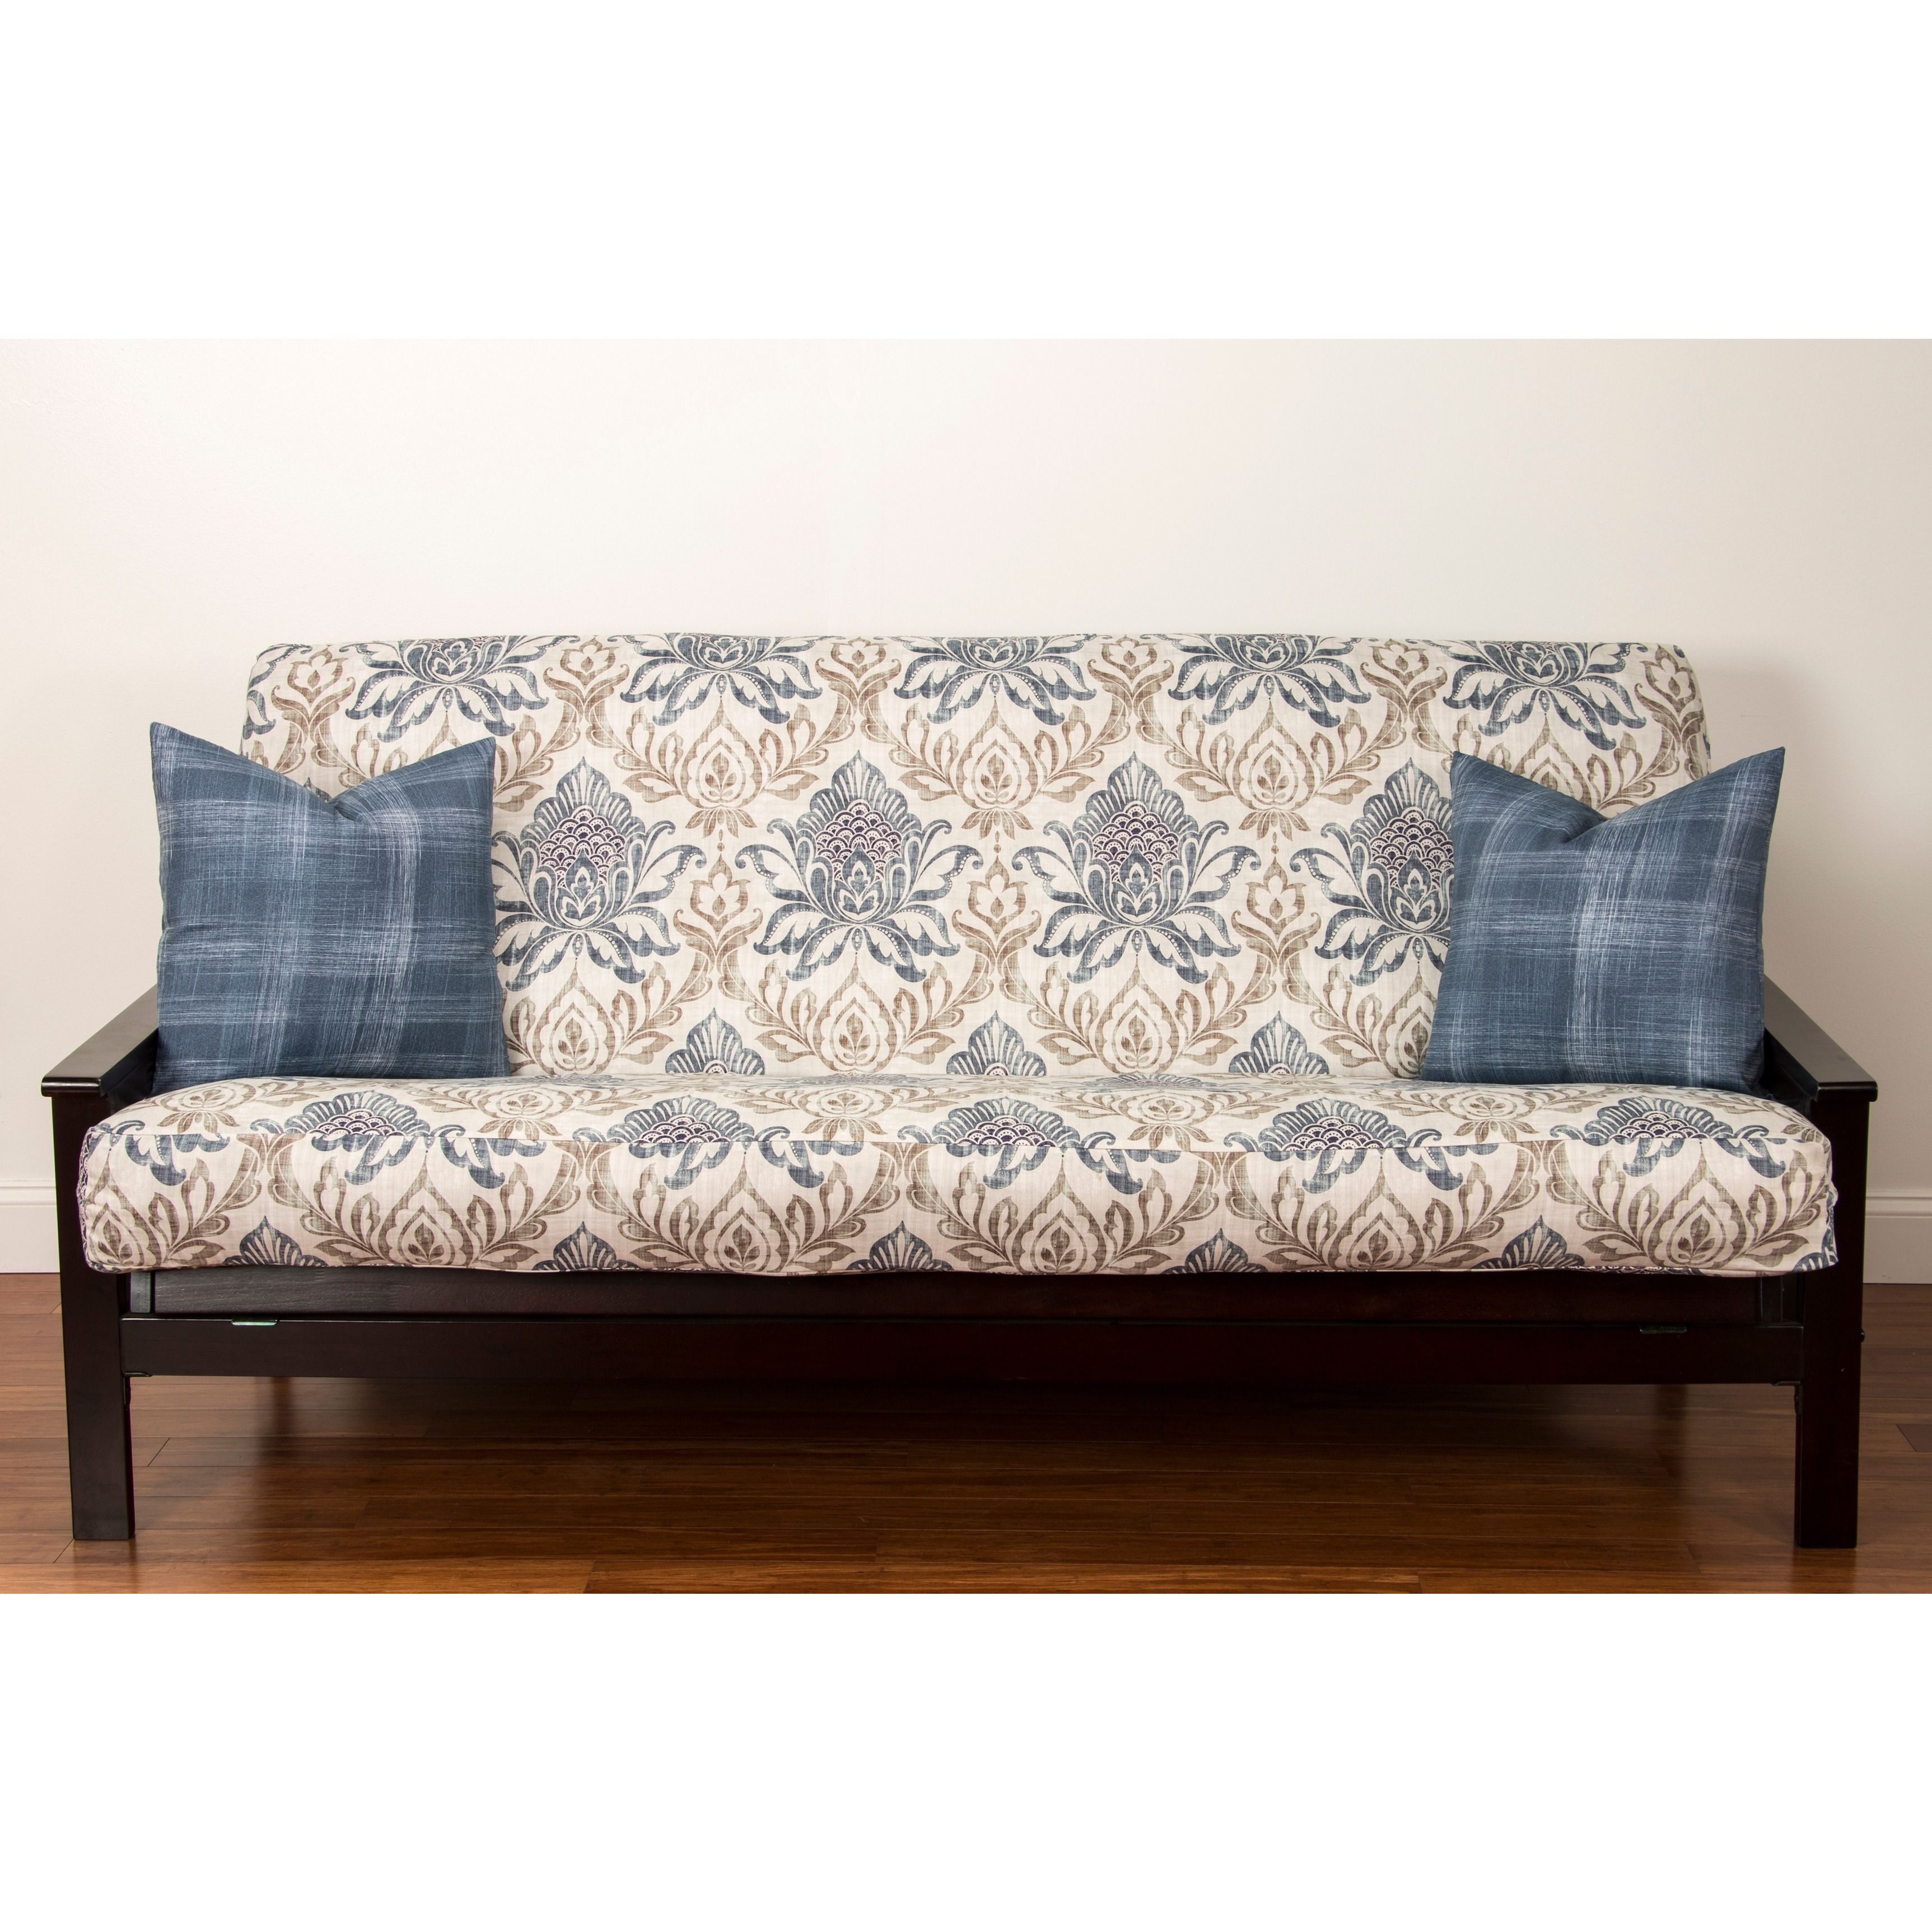 Keep Your Futon Cushion Protected With This Colorful Cover By Genoa Baroque The Blue Queen Size